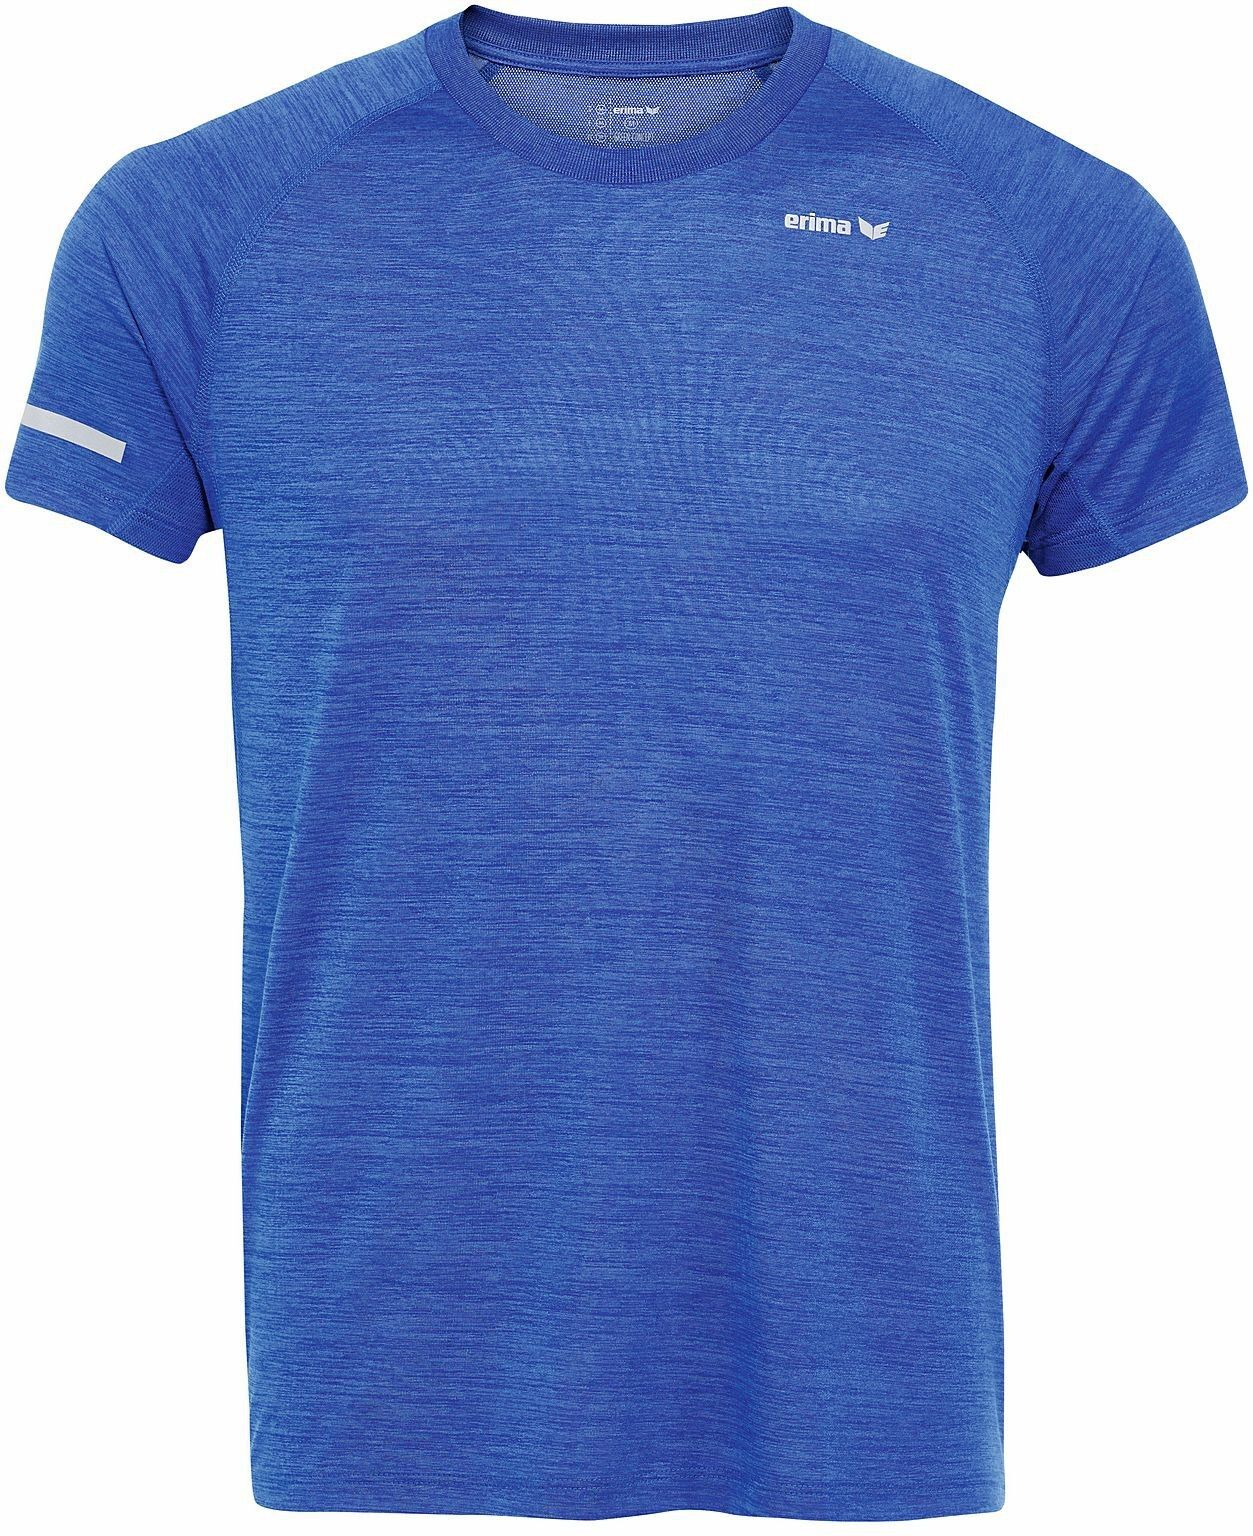 Erima Green Running T-Shirt bluee Men's Running Shirt NEW